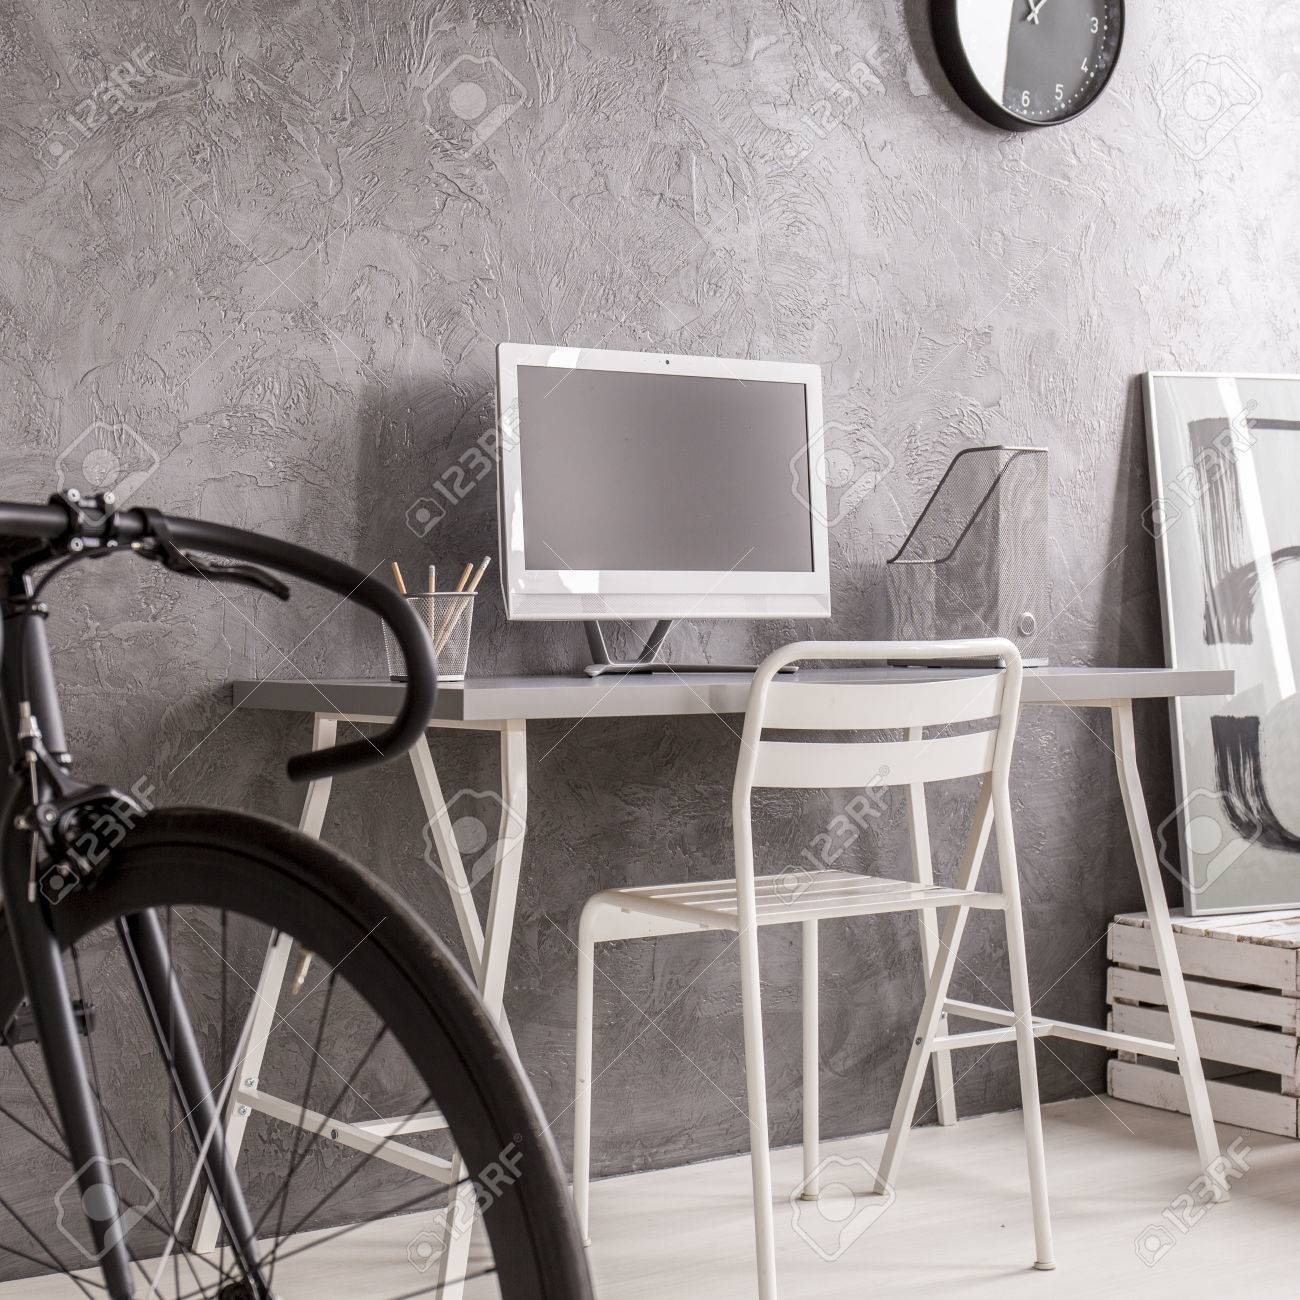 Grey Minimalist Room With Black Bike White Desk Computer And Stock Photo Picture And Royalty Free Image Image 66355810